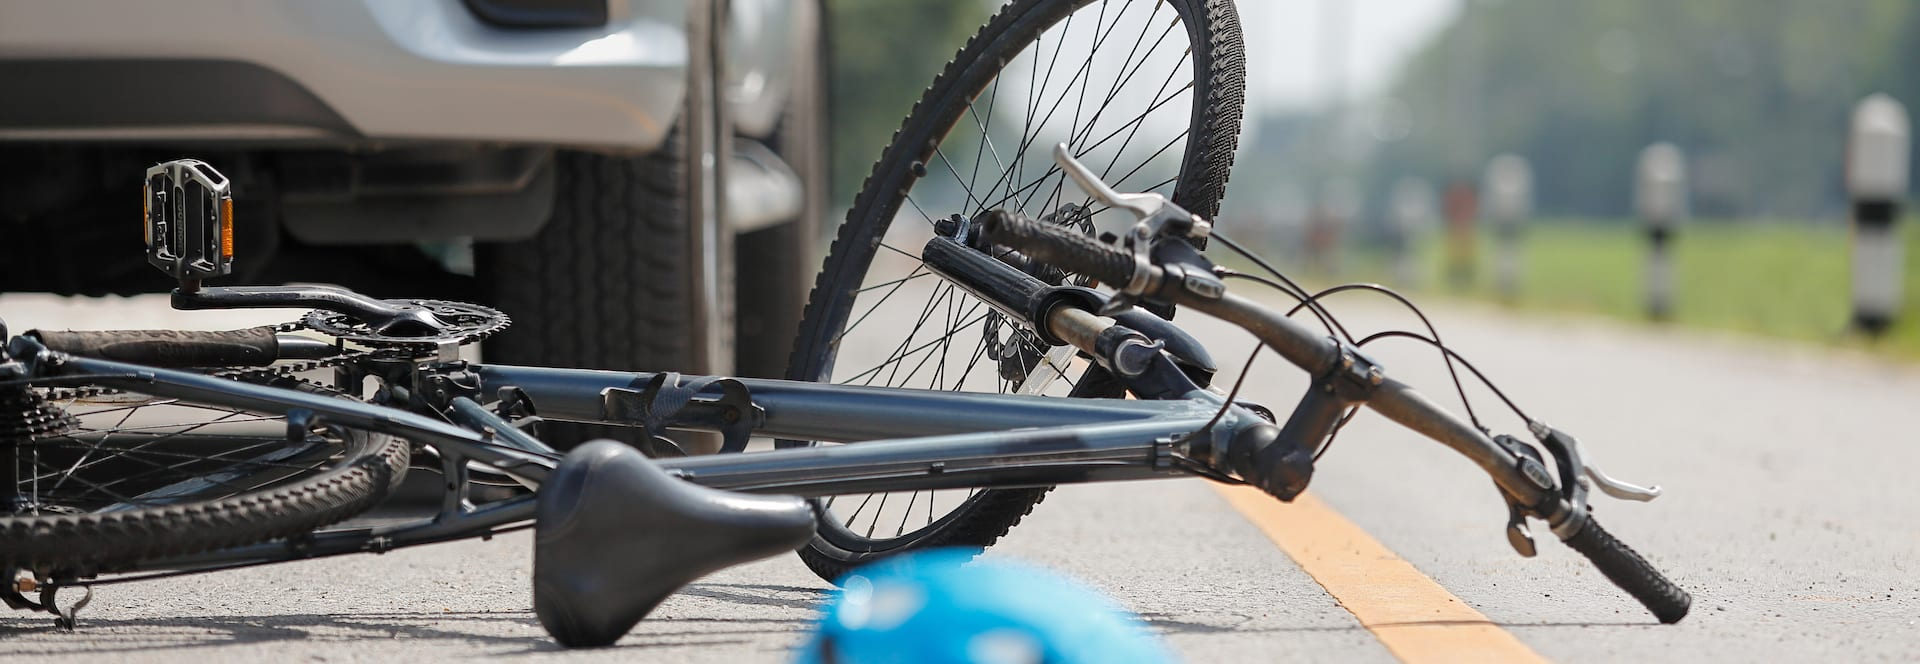 Bicycle Accident Lawyer Atlanta